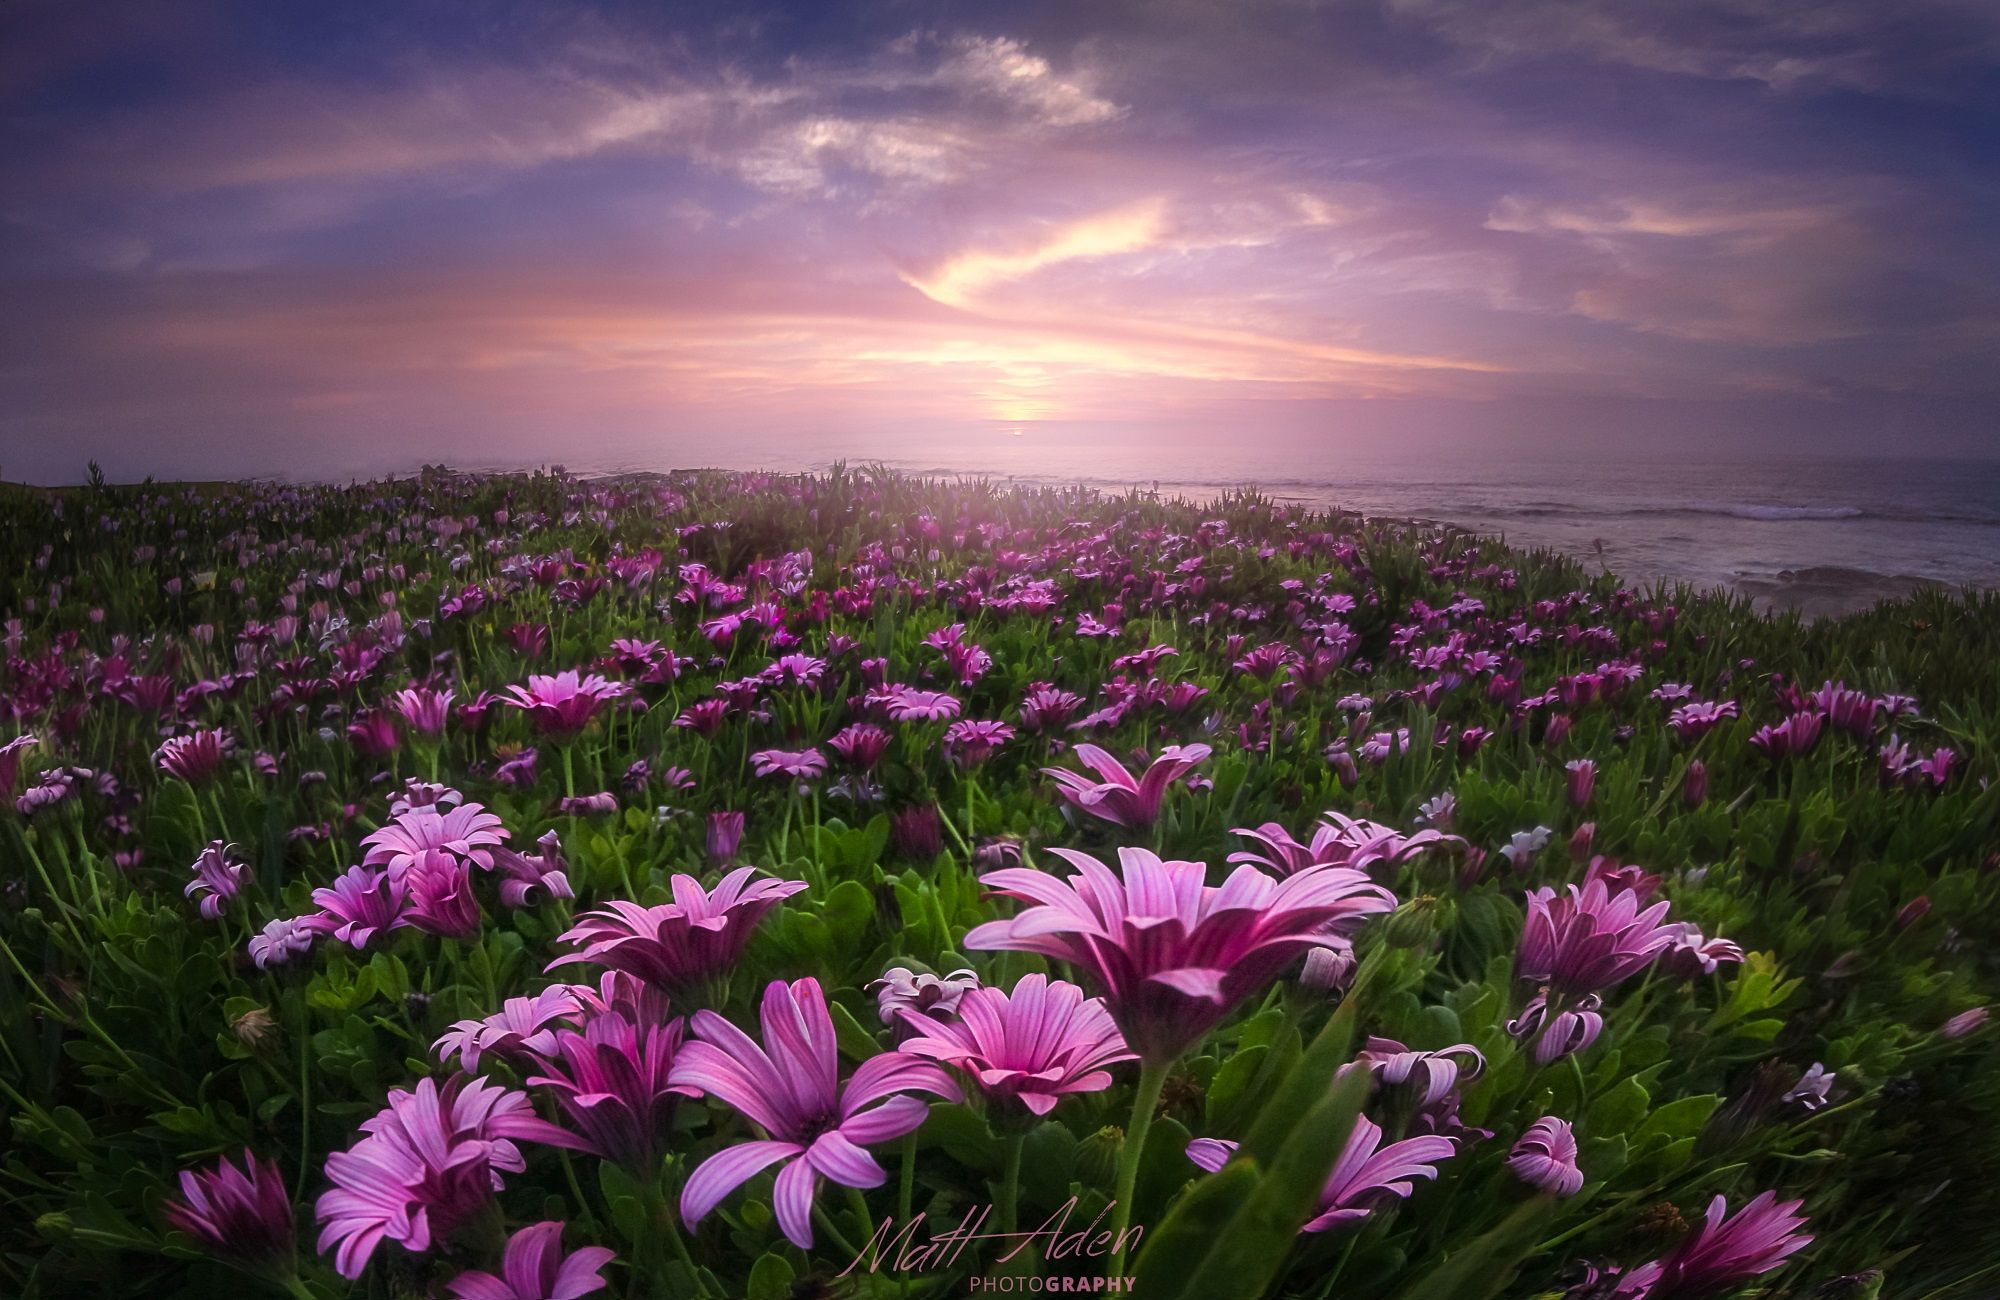 Photograph Coastal Flower Field By Matt Aden On 500px I Love San